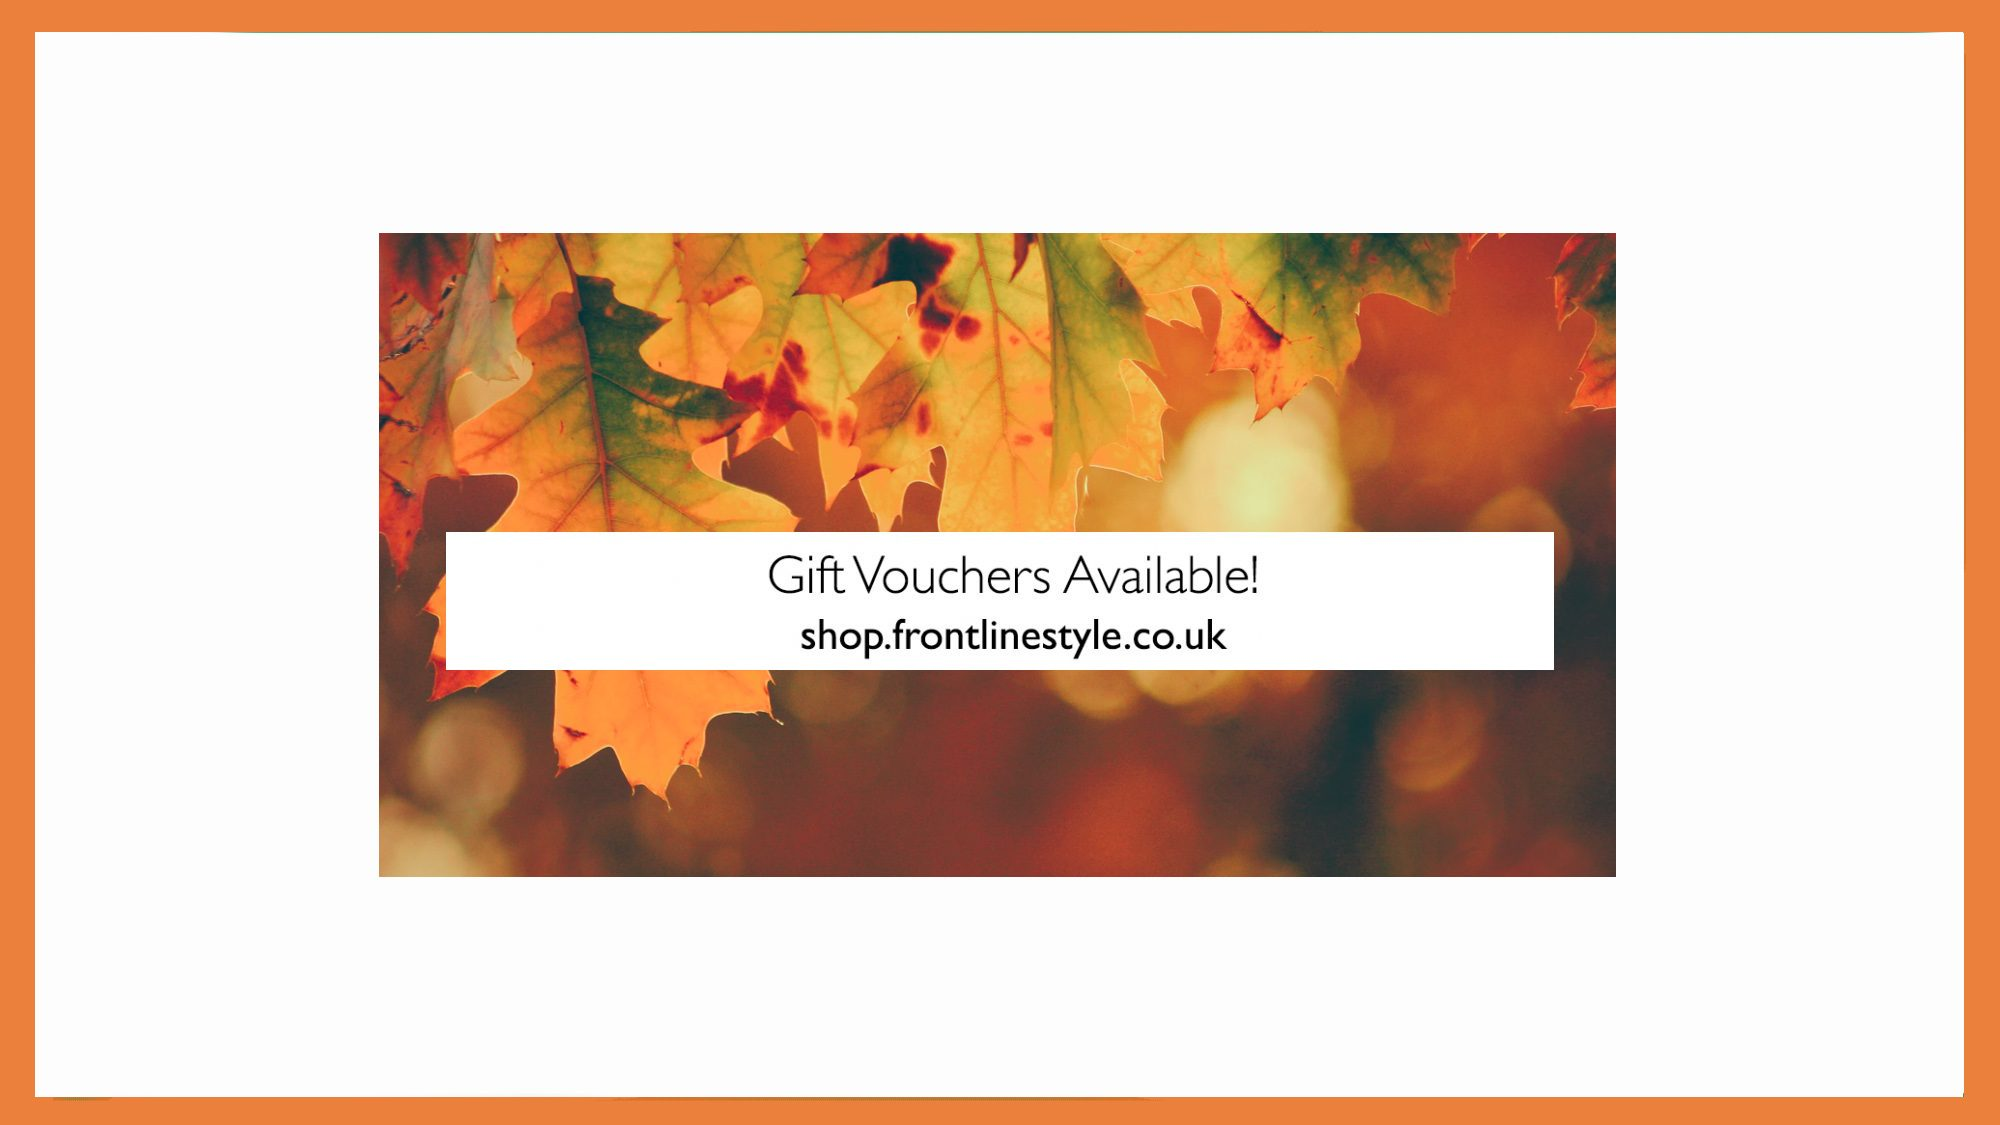 Frontlinestyle Gift Voouchers Available Autmnal Leaves Banner 2019